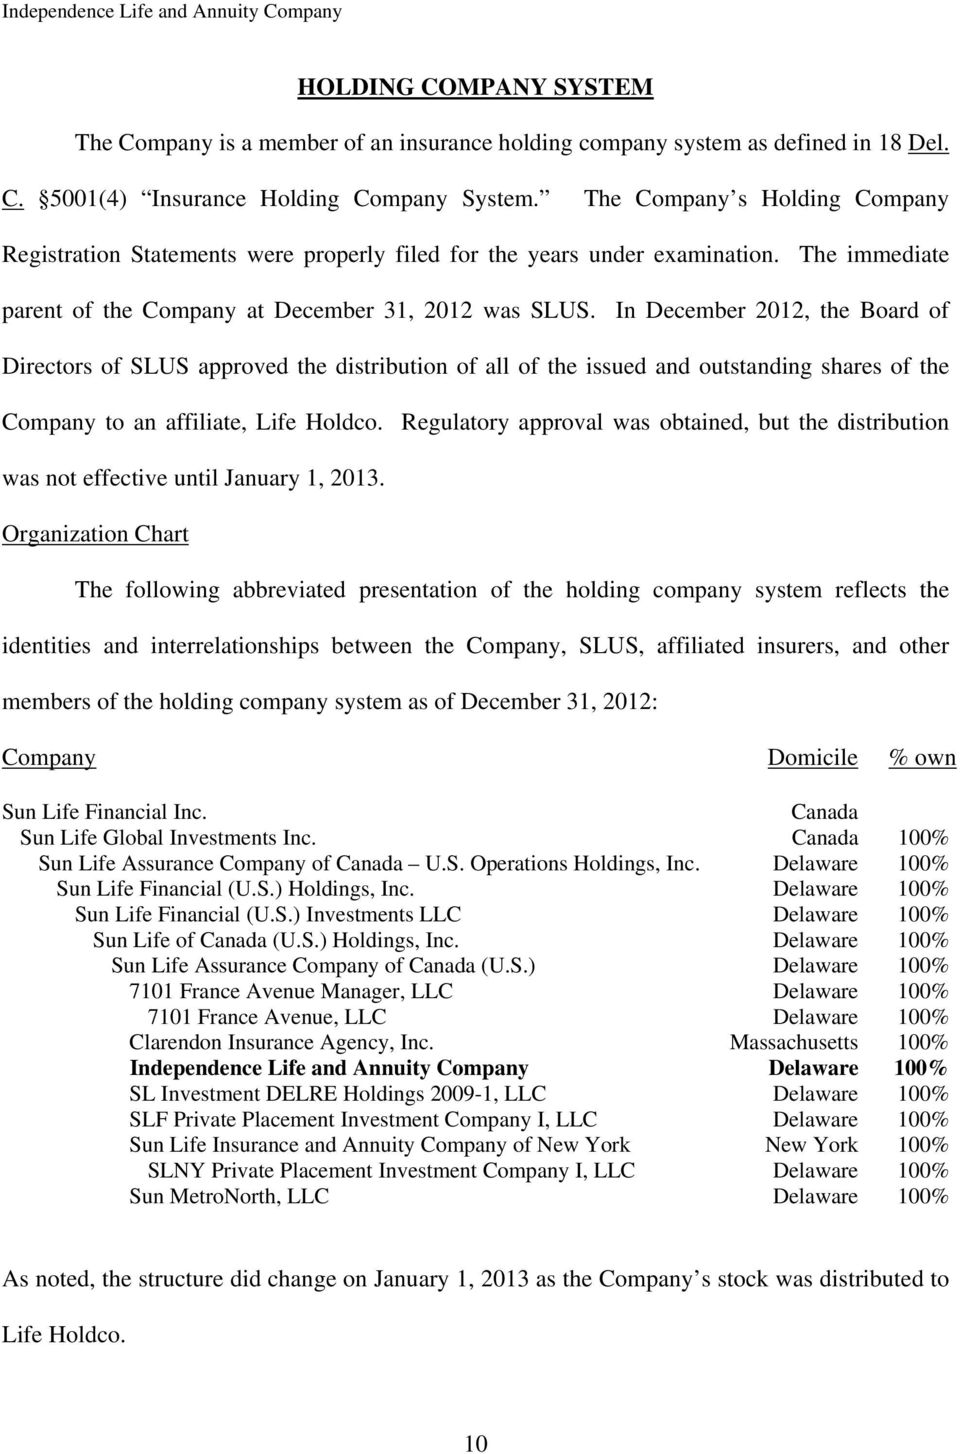 In December 2012, the Board of Directors of SLUS approved the distribution of all of the issued and outstanding shares of the Company to an affiliate, Life Holdco.